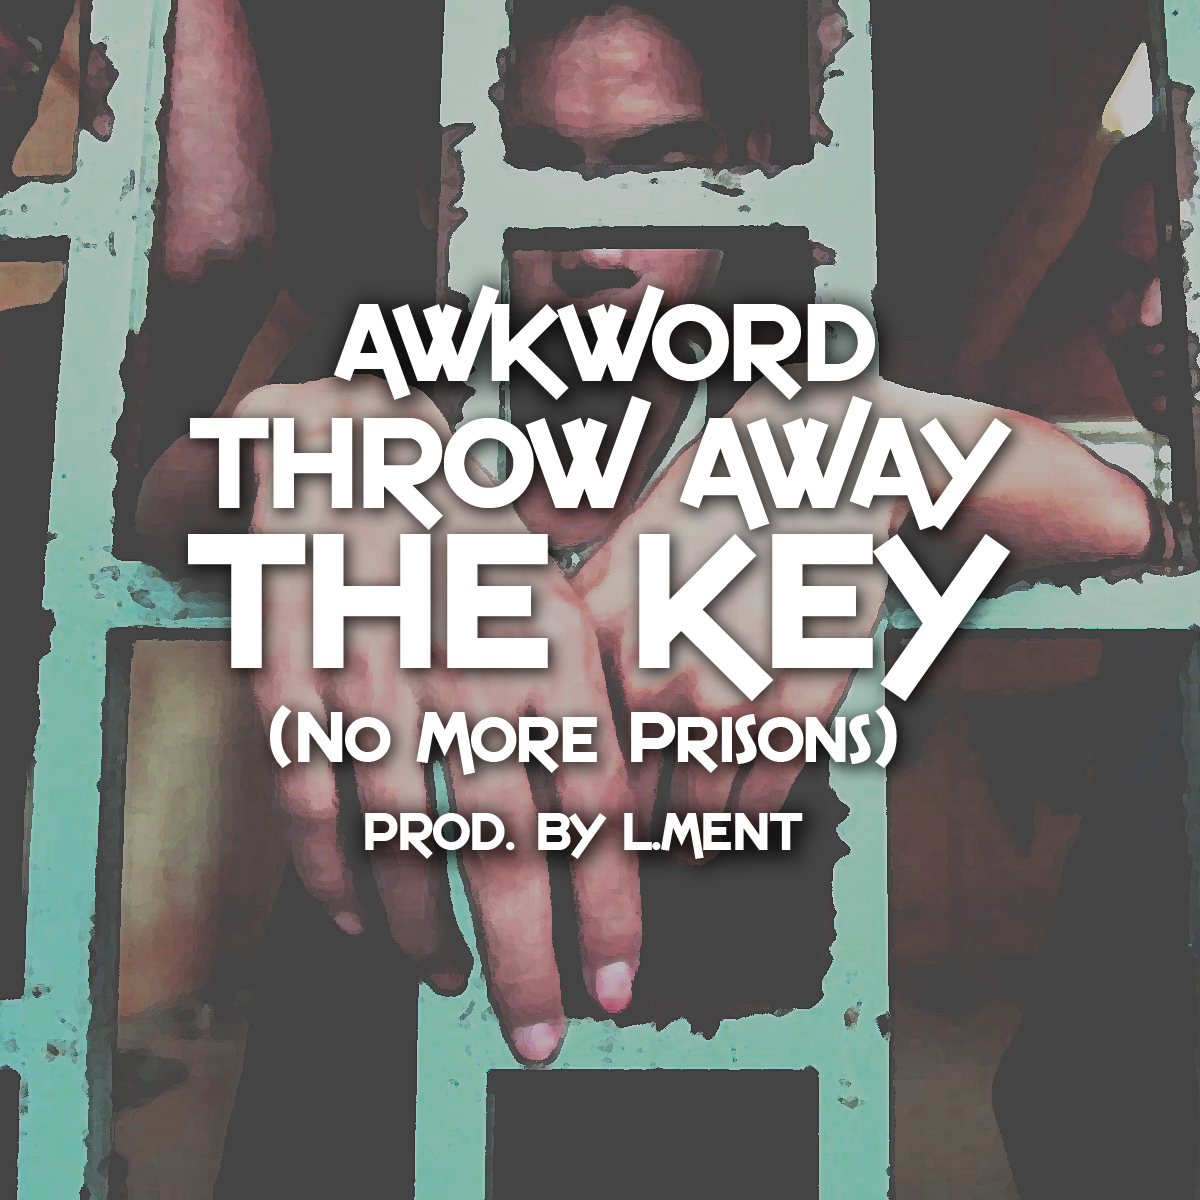 AWKWORD_Throw-Away-The-Key_No-More-Prisons1